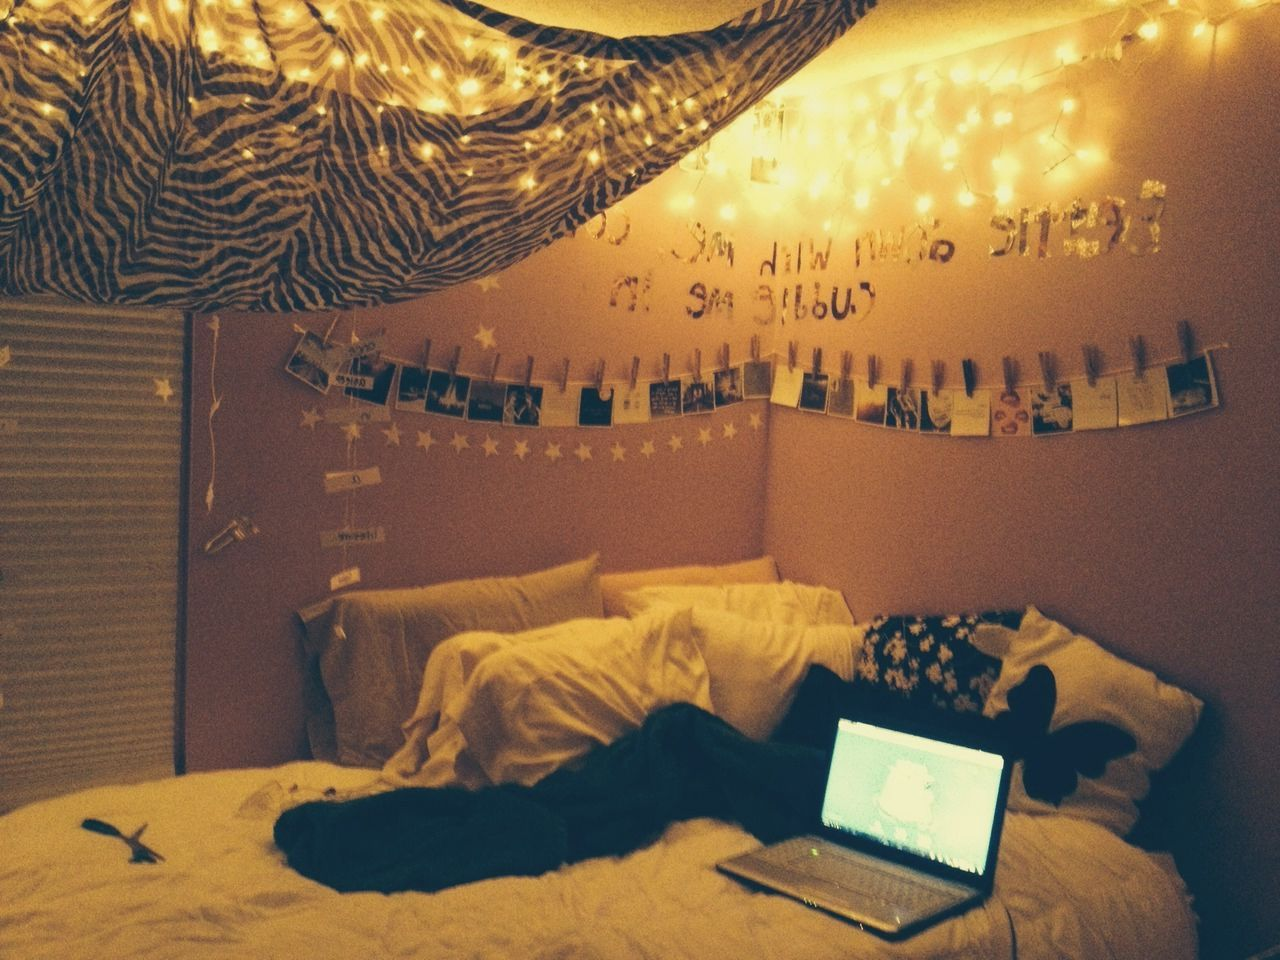 Bedroom girls tumblr ideas - Bedroom Ideas For Teenage Girls Tumblr Google Search